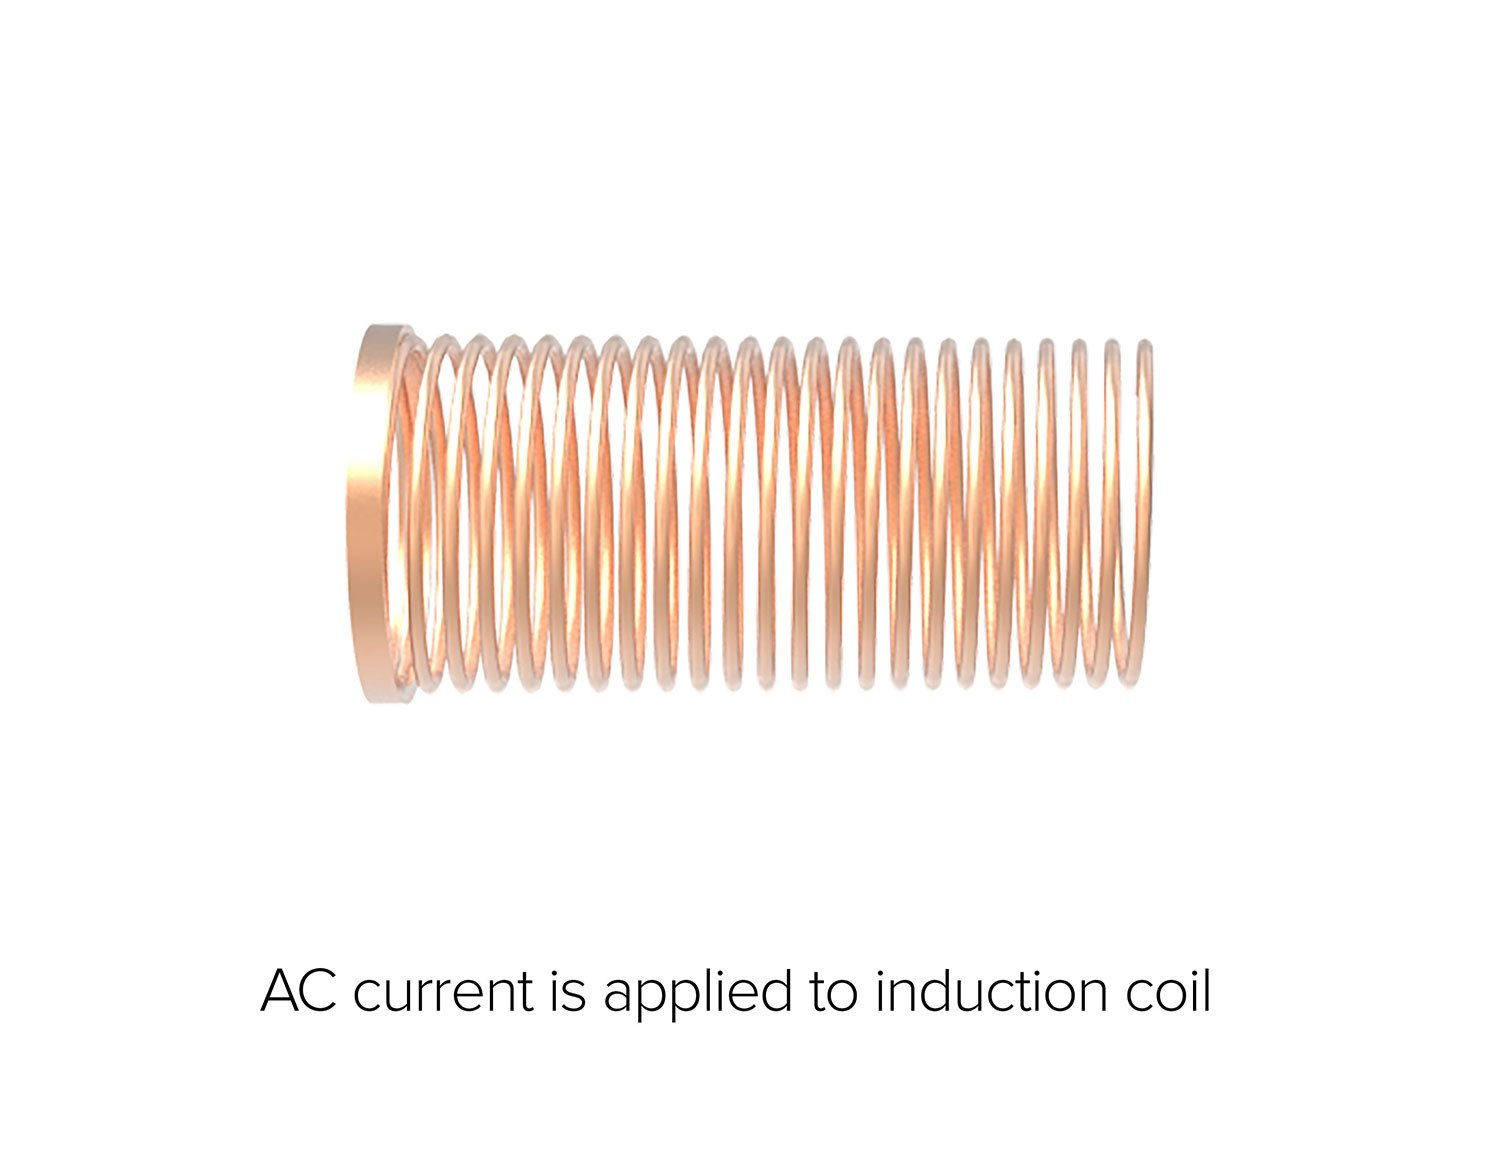 Induction Heating - Step 1